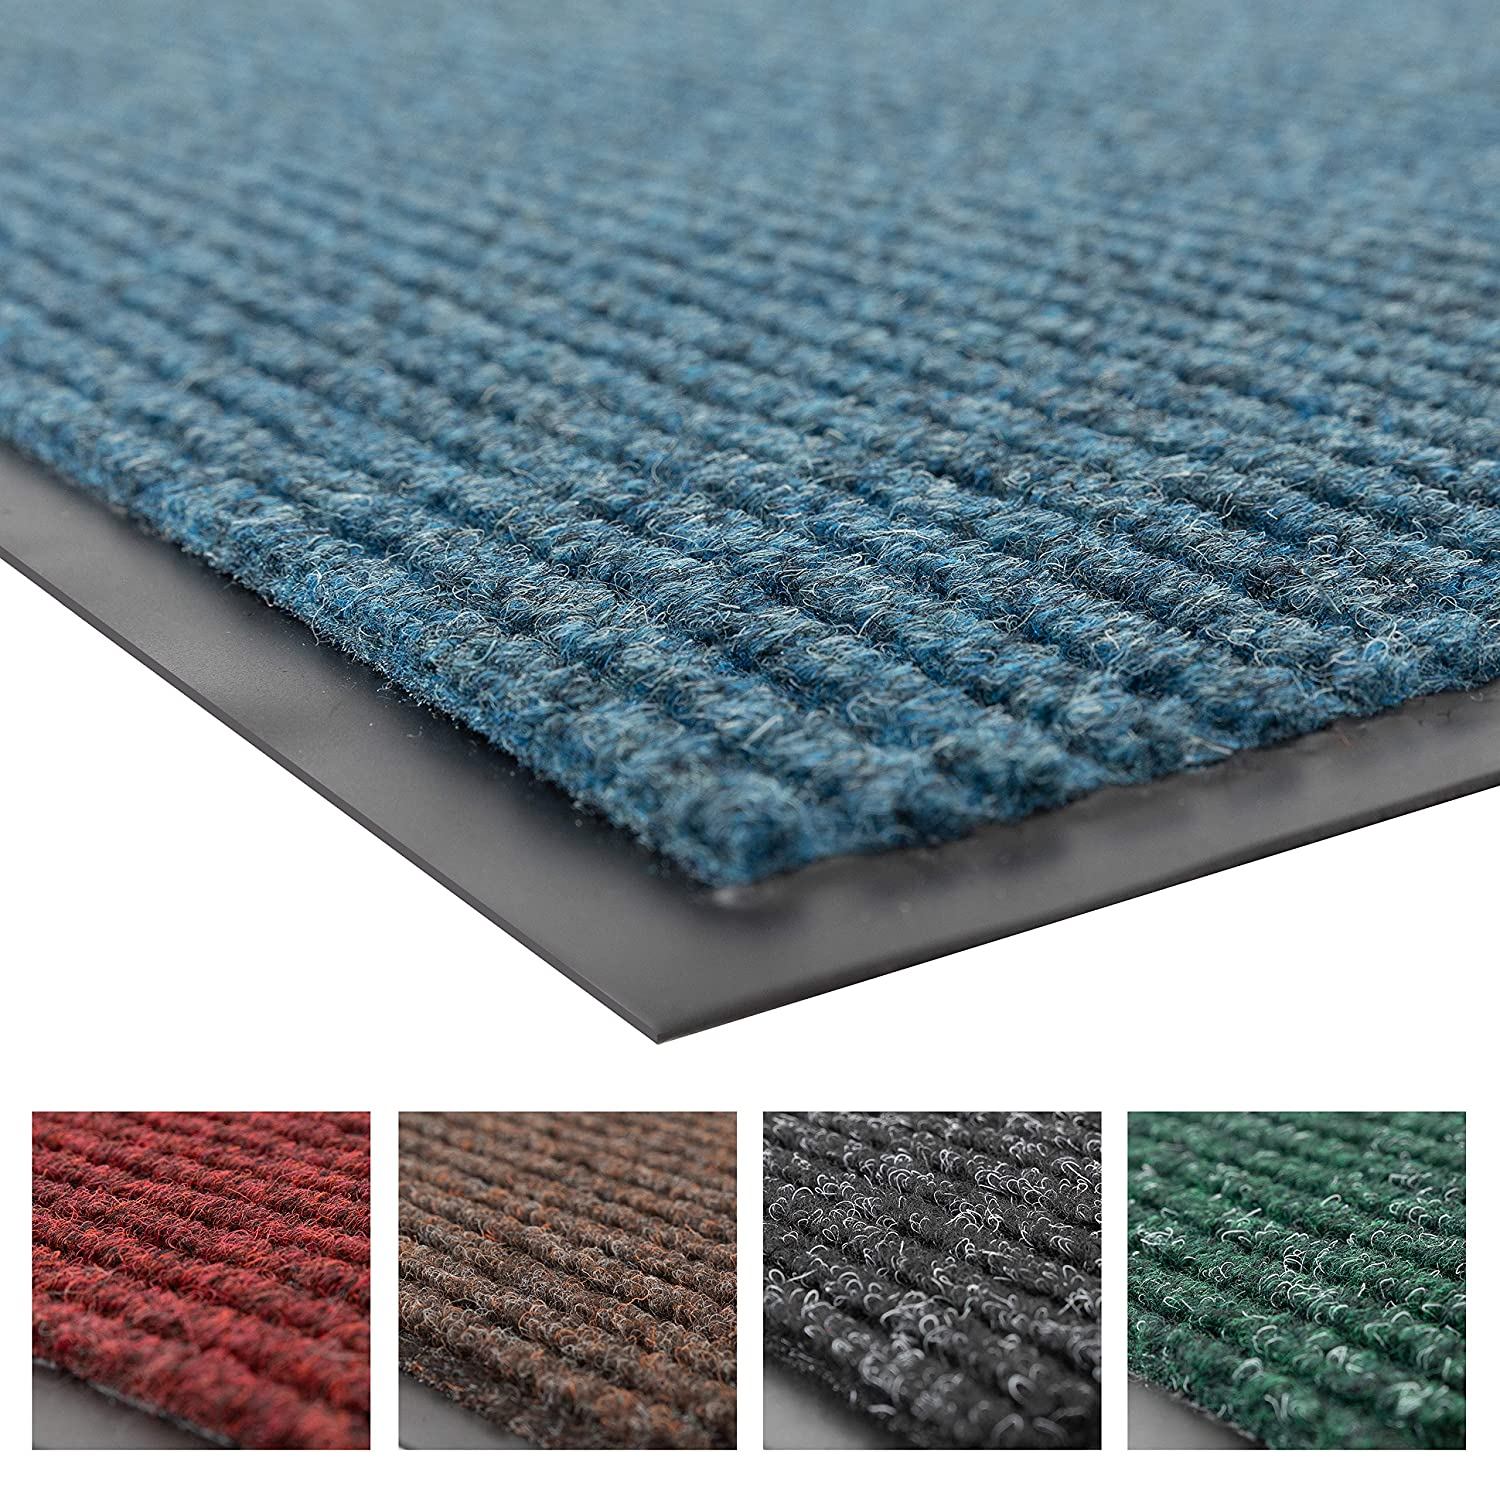 Notrax 109 Brush Step Entrance Mat, for Home or Office, 3' X 4' Slate Blue